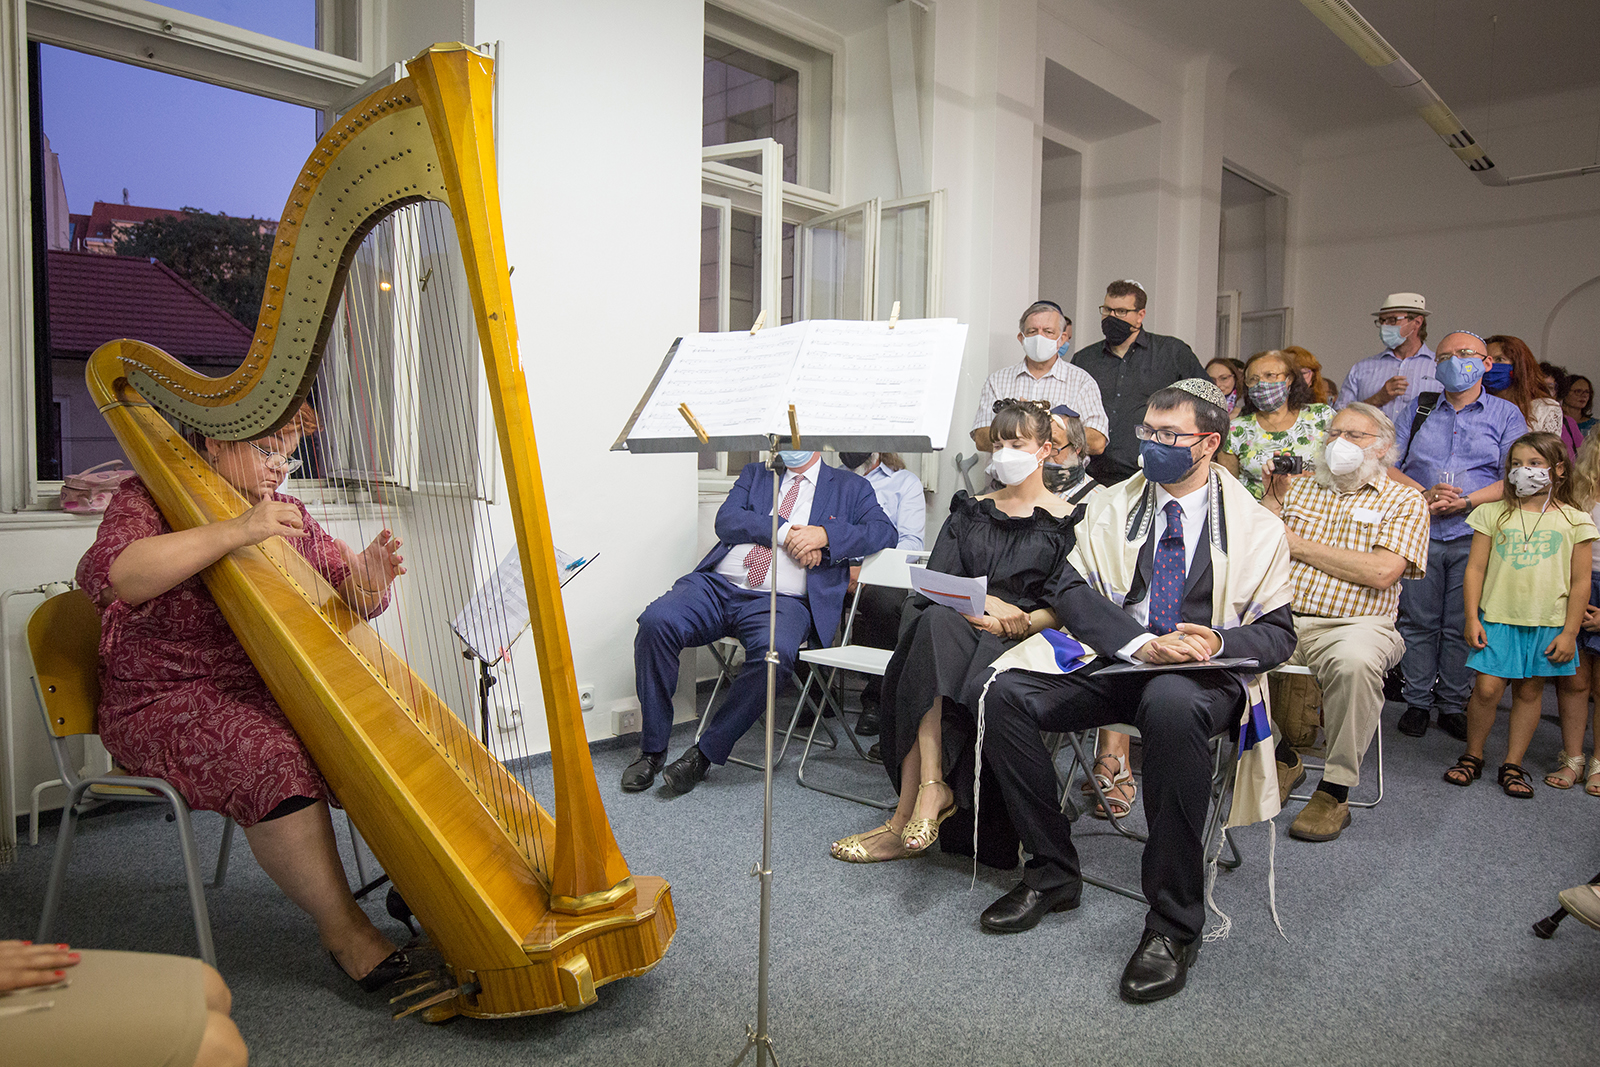 """A musician plays the hard during the opening of the """"Ec Chajim"""" synagogue in Prague, Czech Republic. Courtesy photo of Leona Kalvodová"""